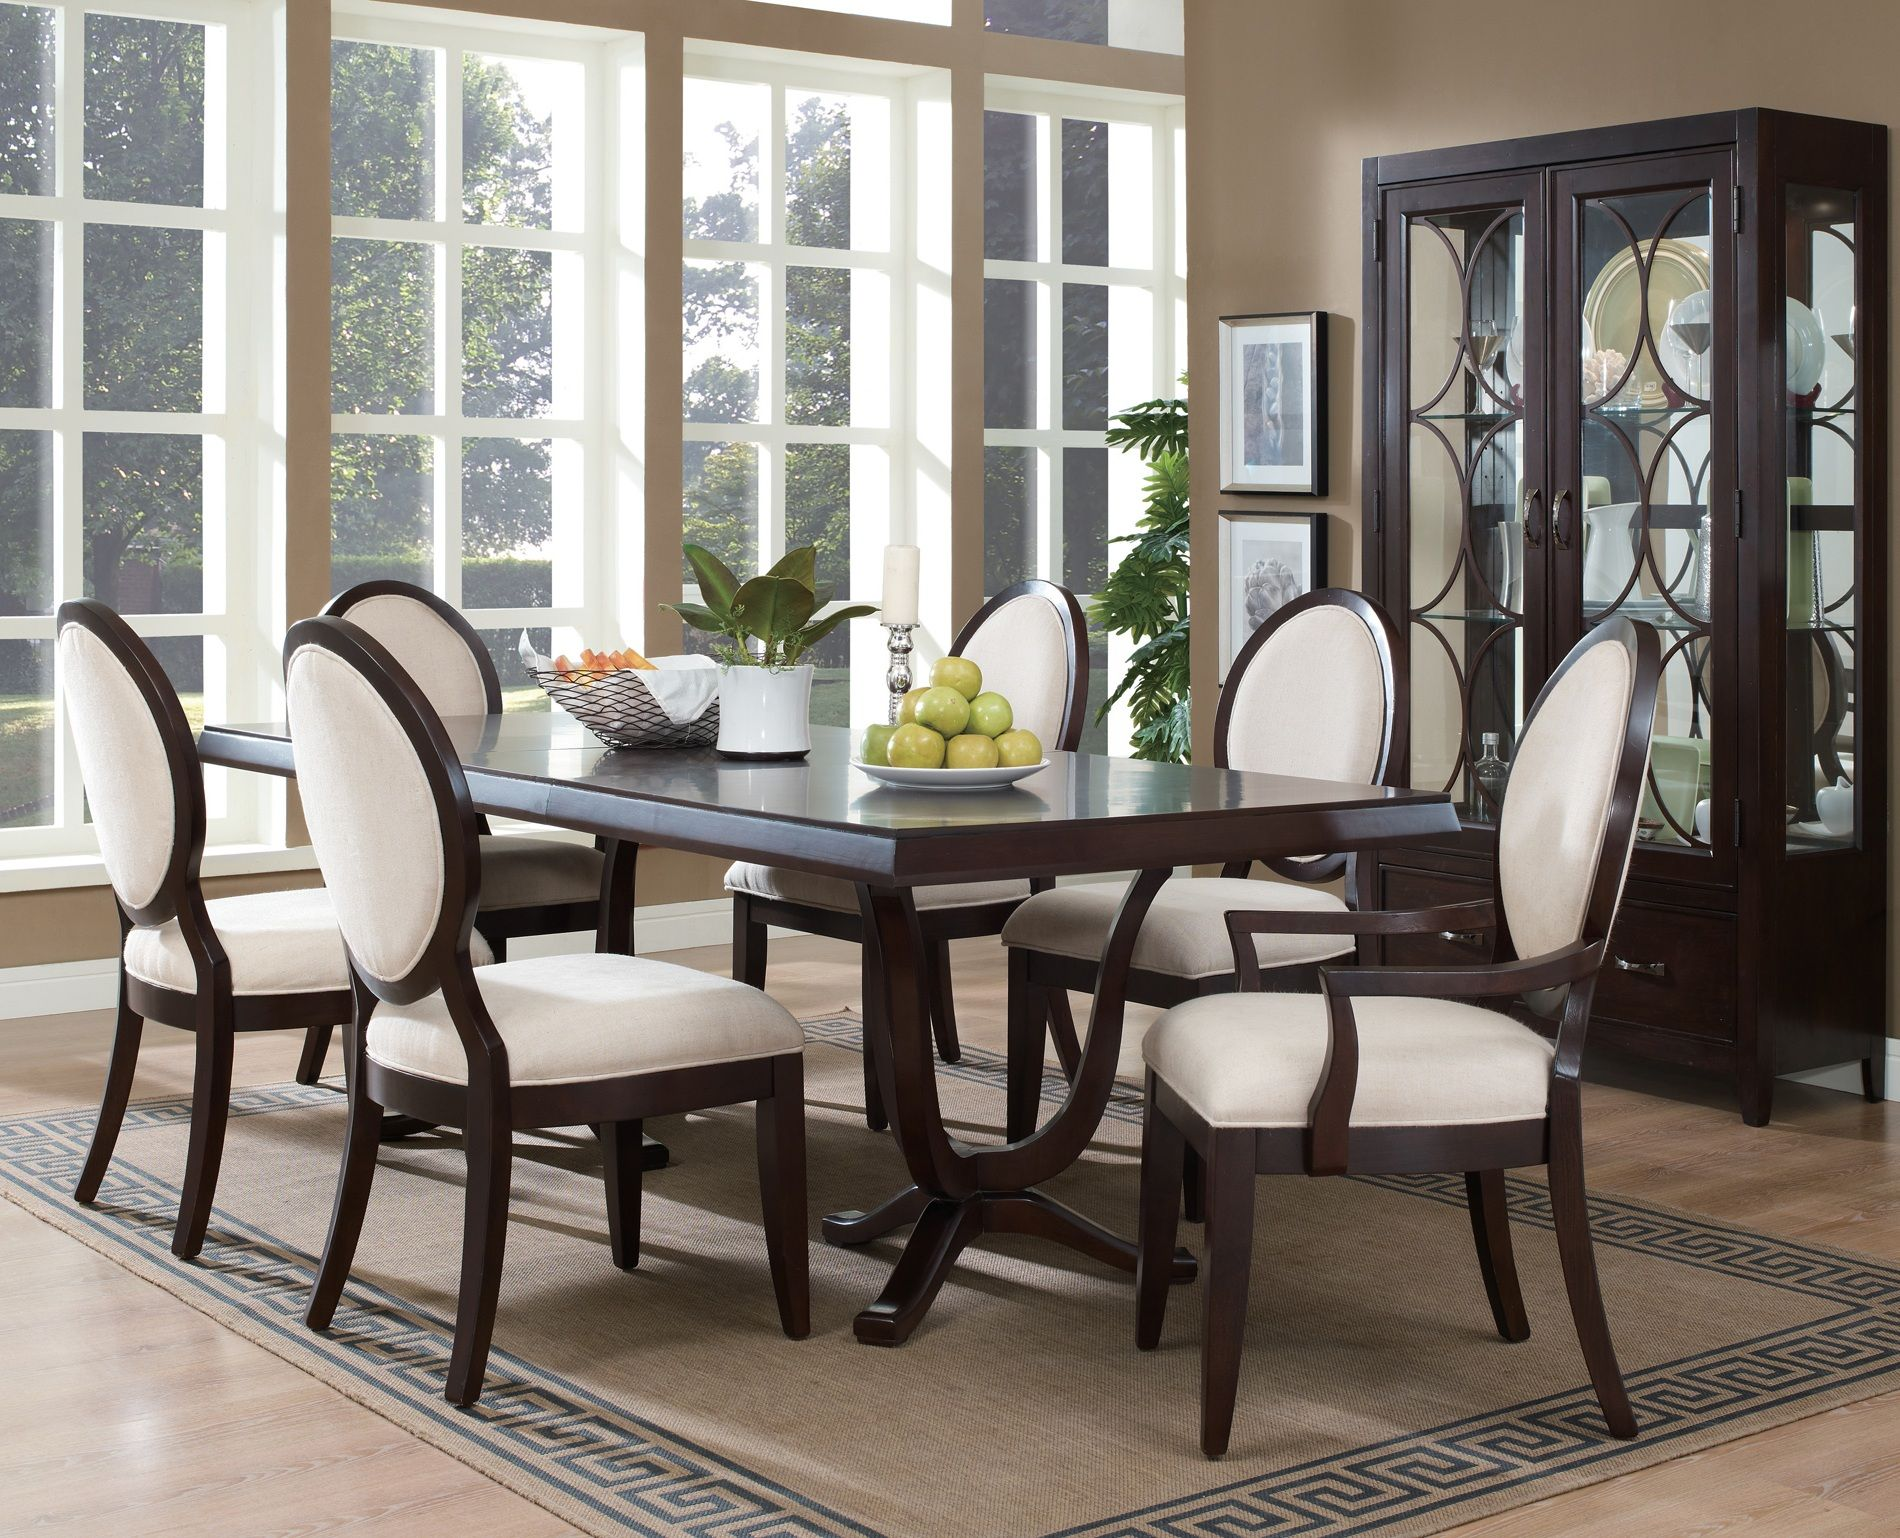 Fascinating Dining Room Set Idea With Two Tone Upholstered Chairs And Rectangular Top Table Mini